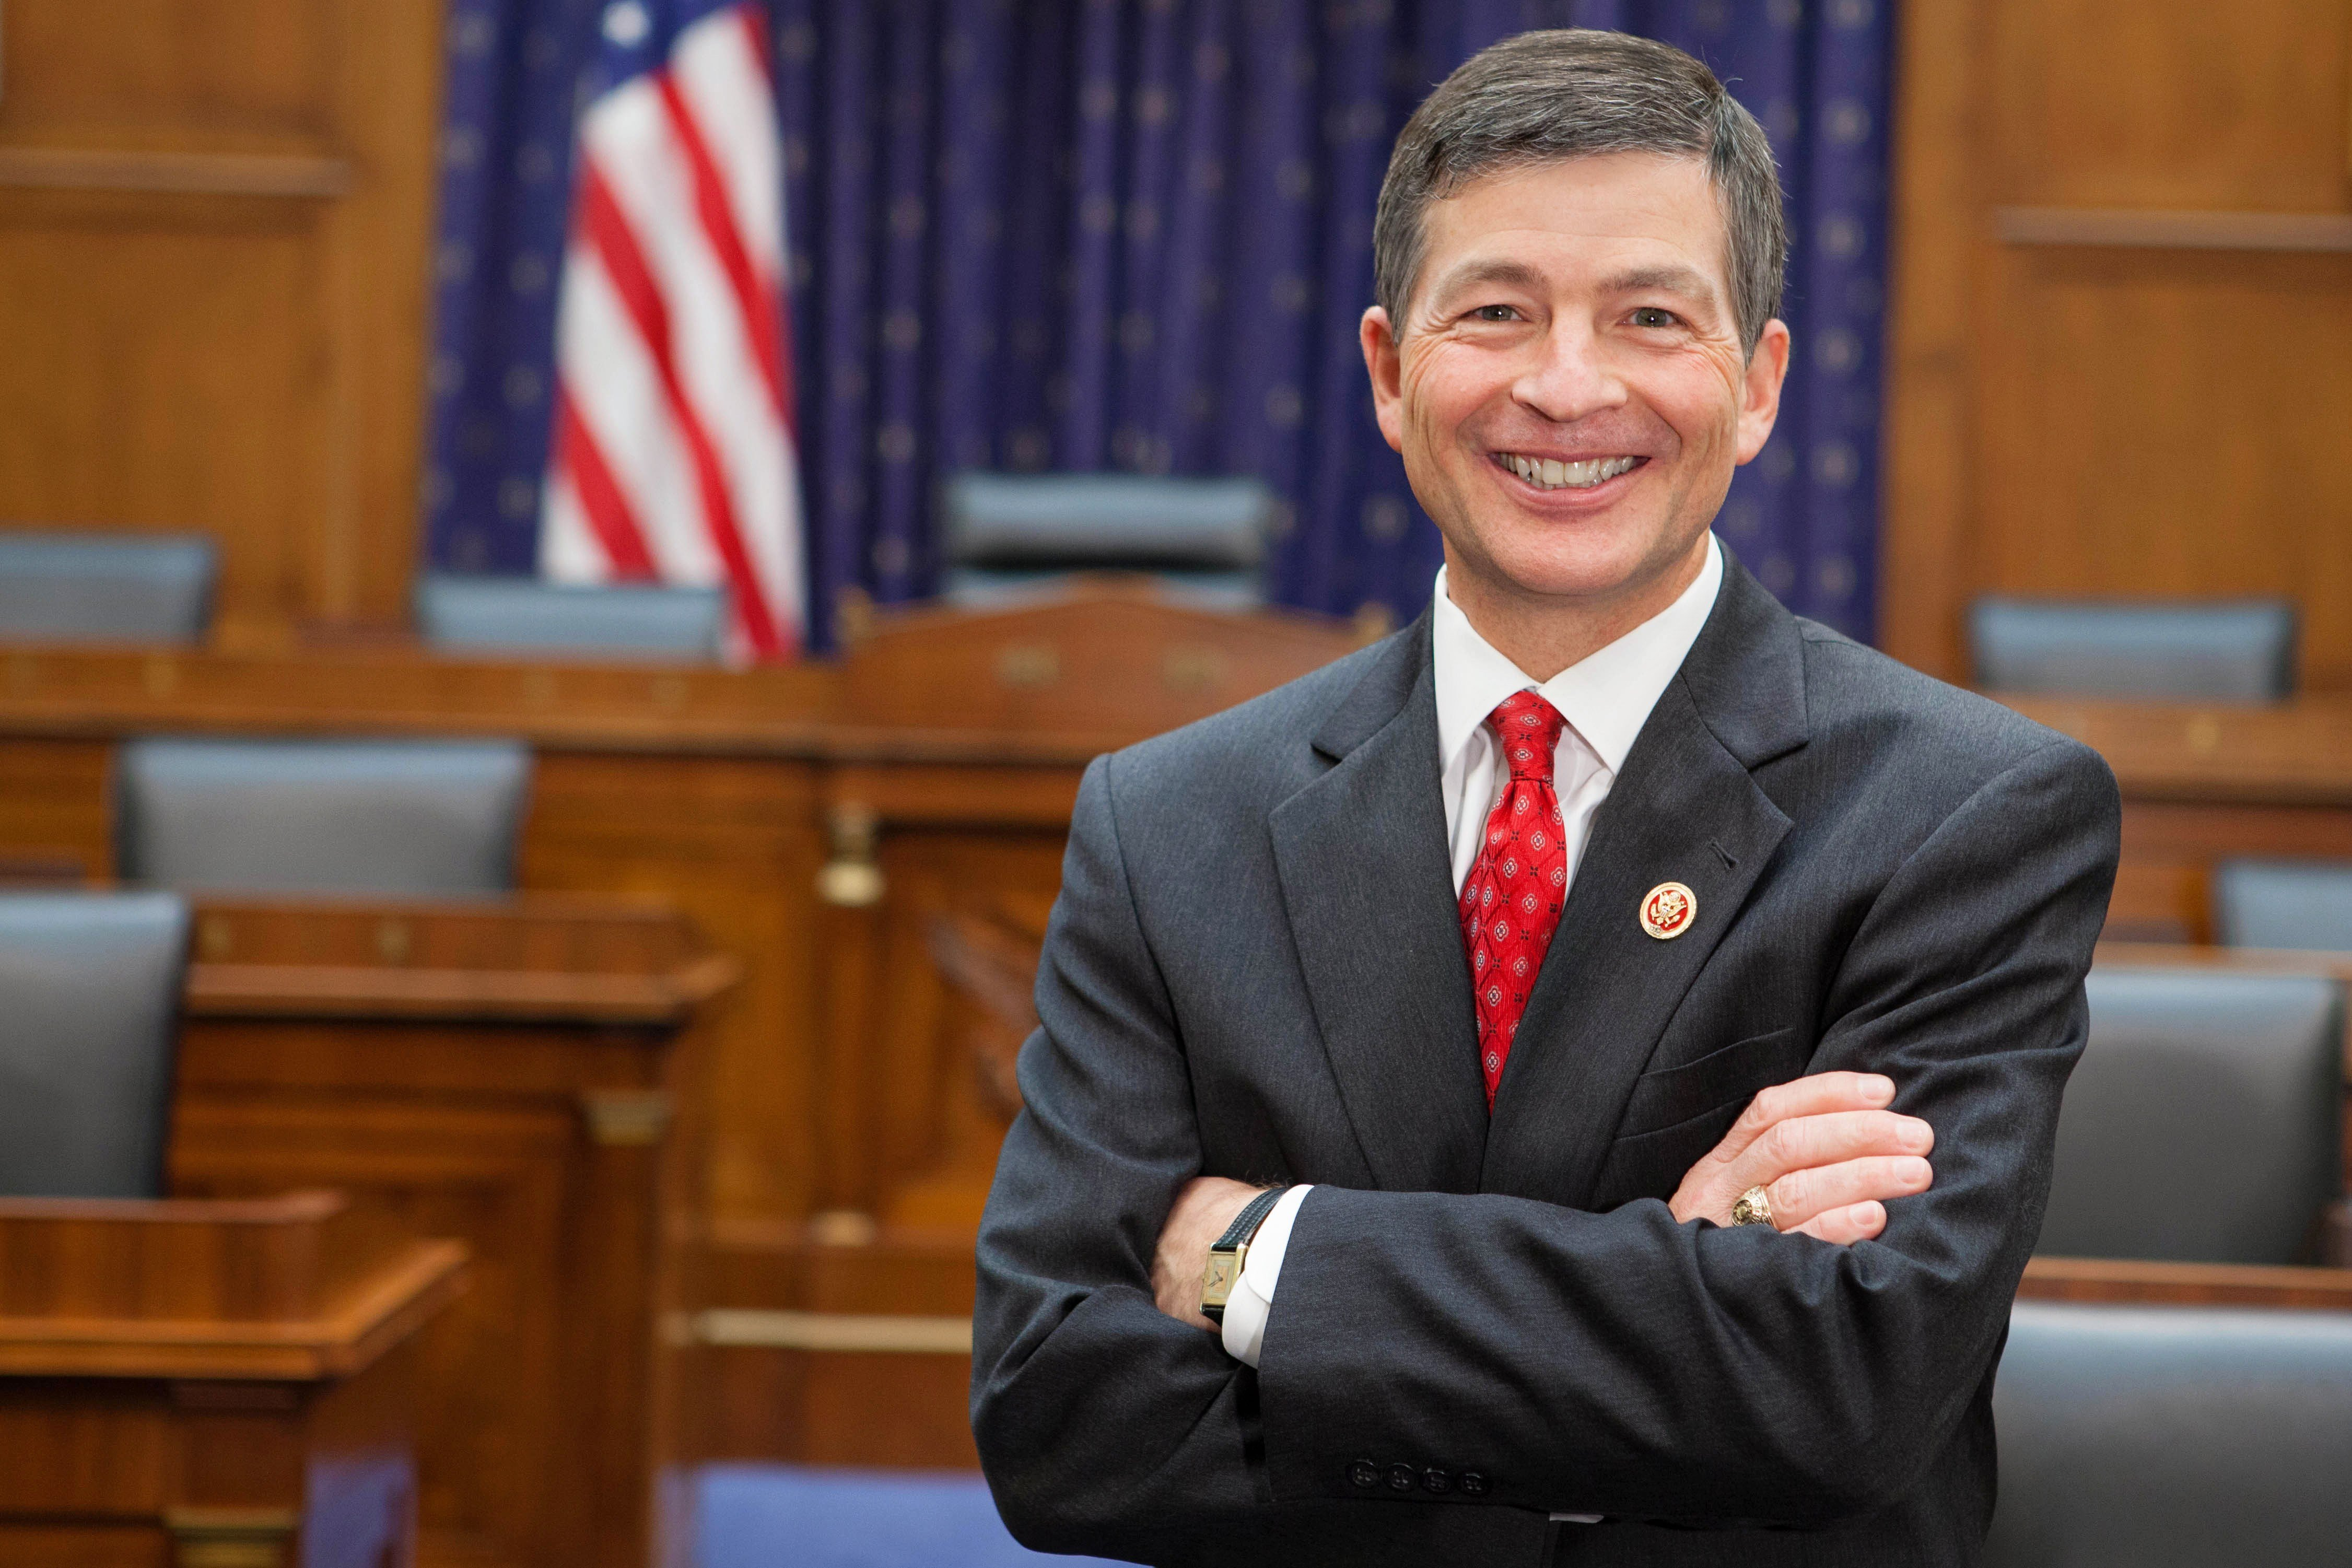 Jeb Hensarling, as seen on his official website. Photo: Jeb Hensarling / U.S. House of Representatives